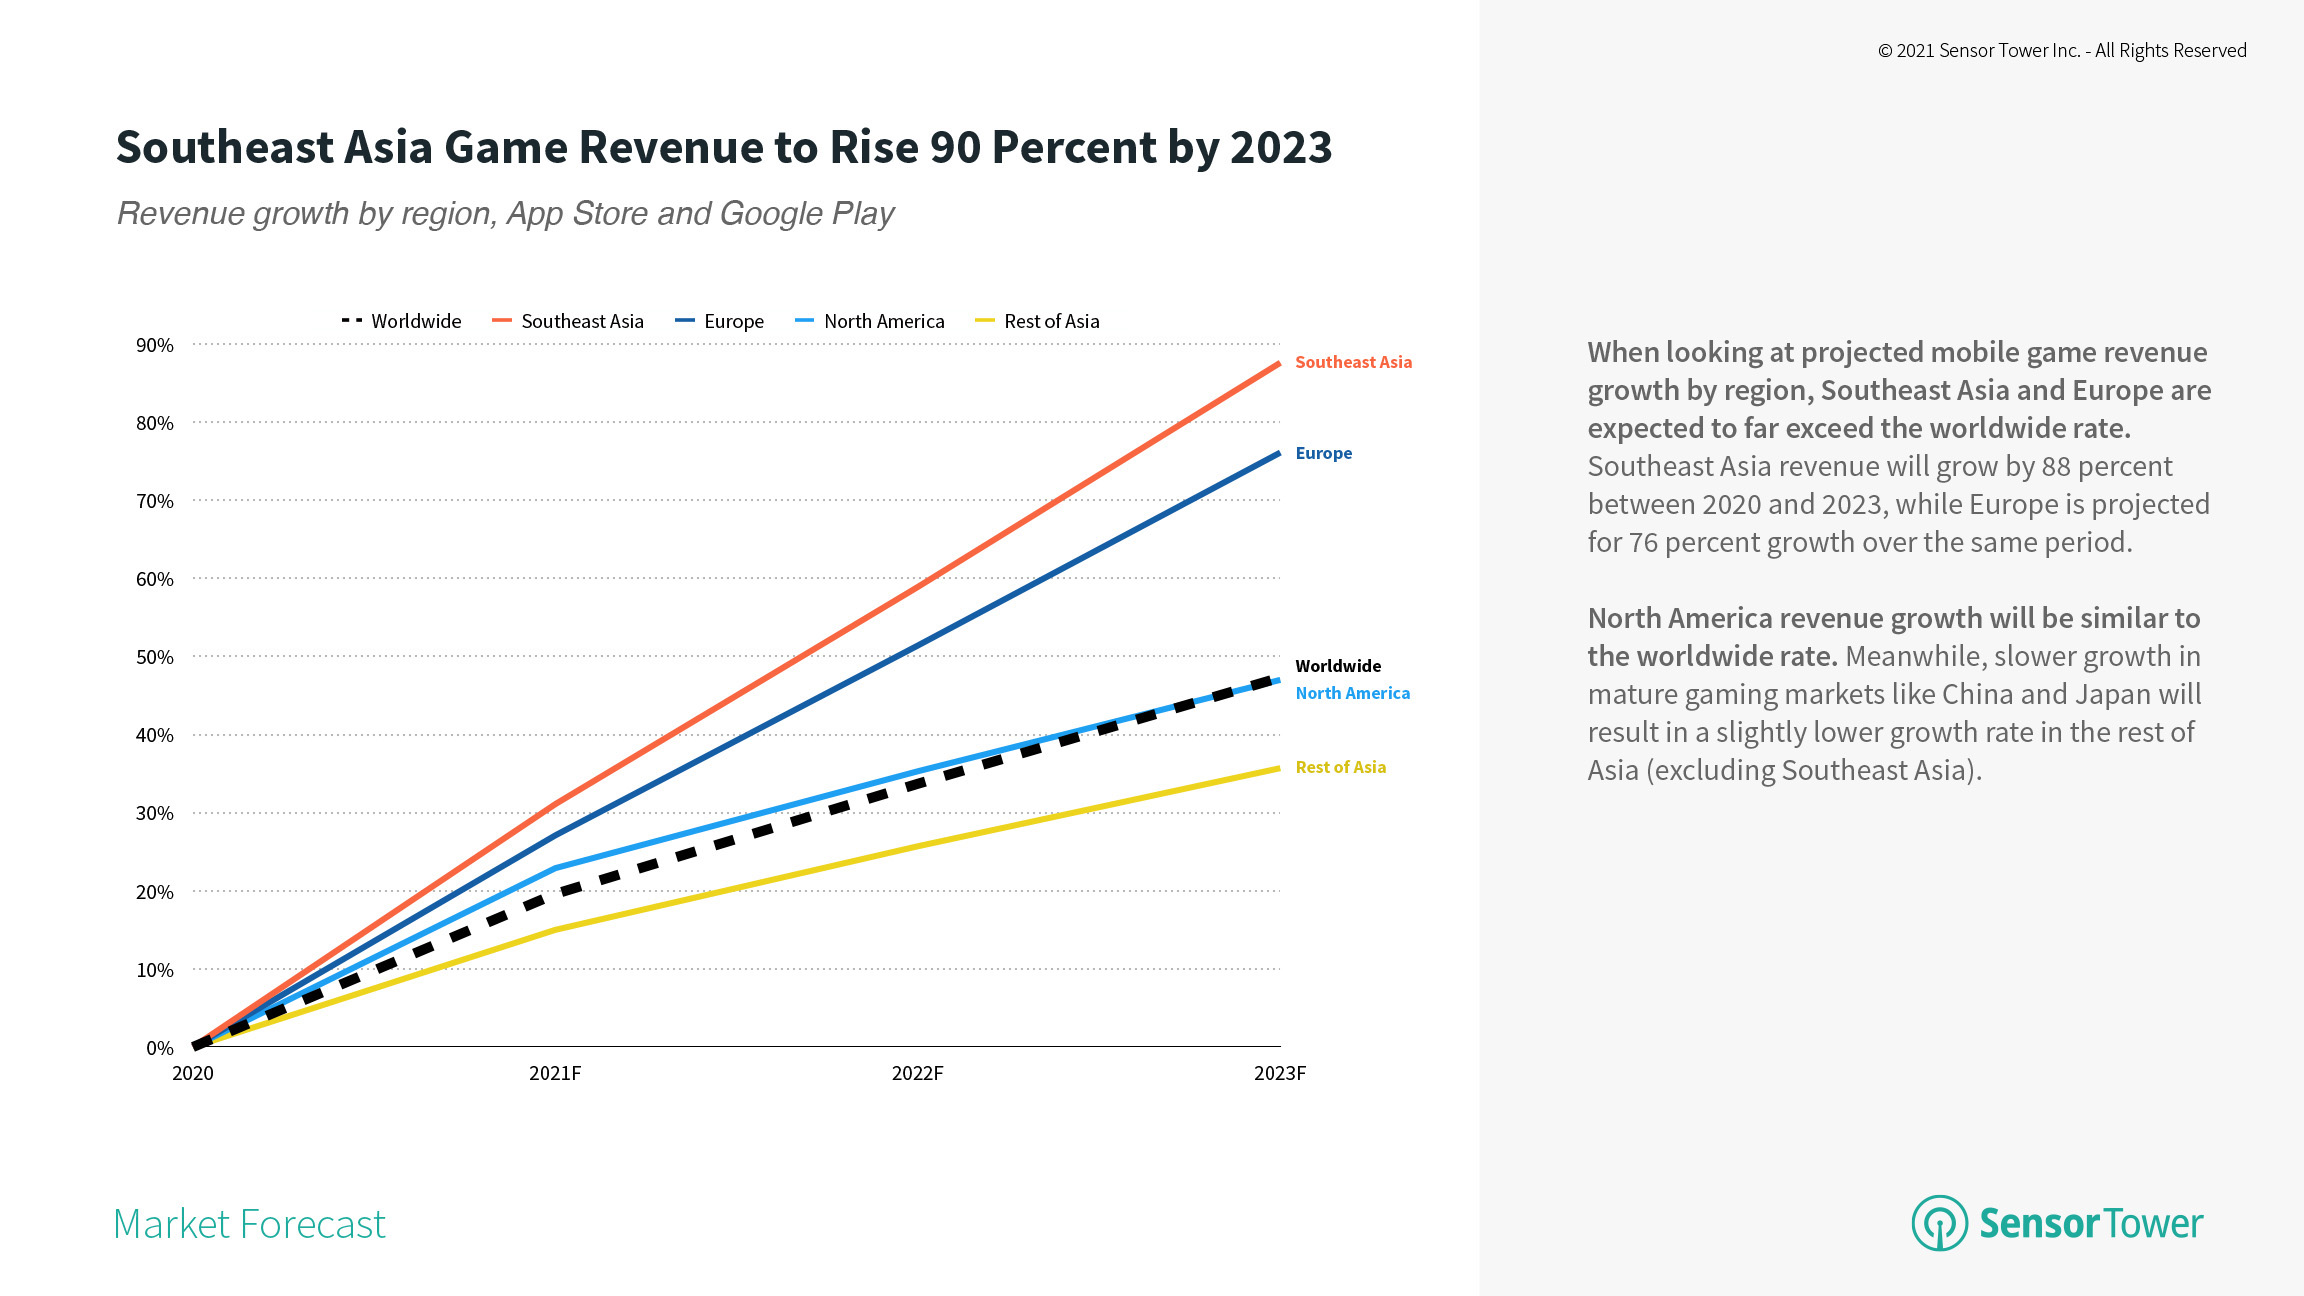 Mobile game revenue growth by region 2020 to 2023